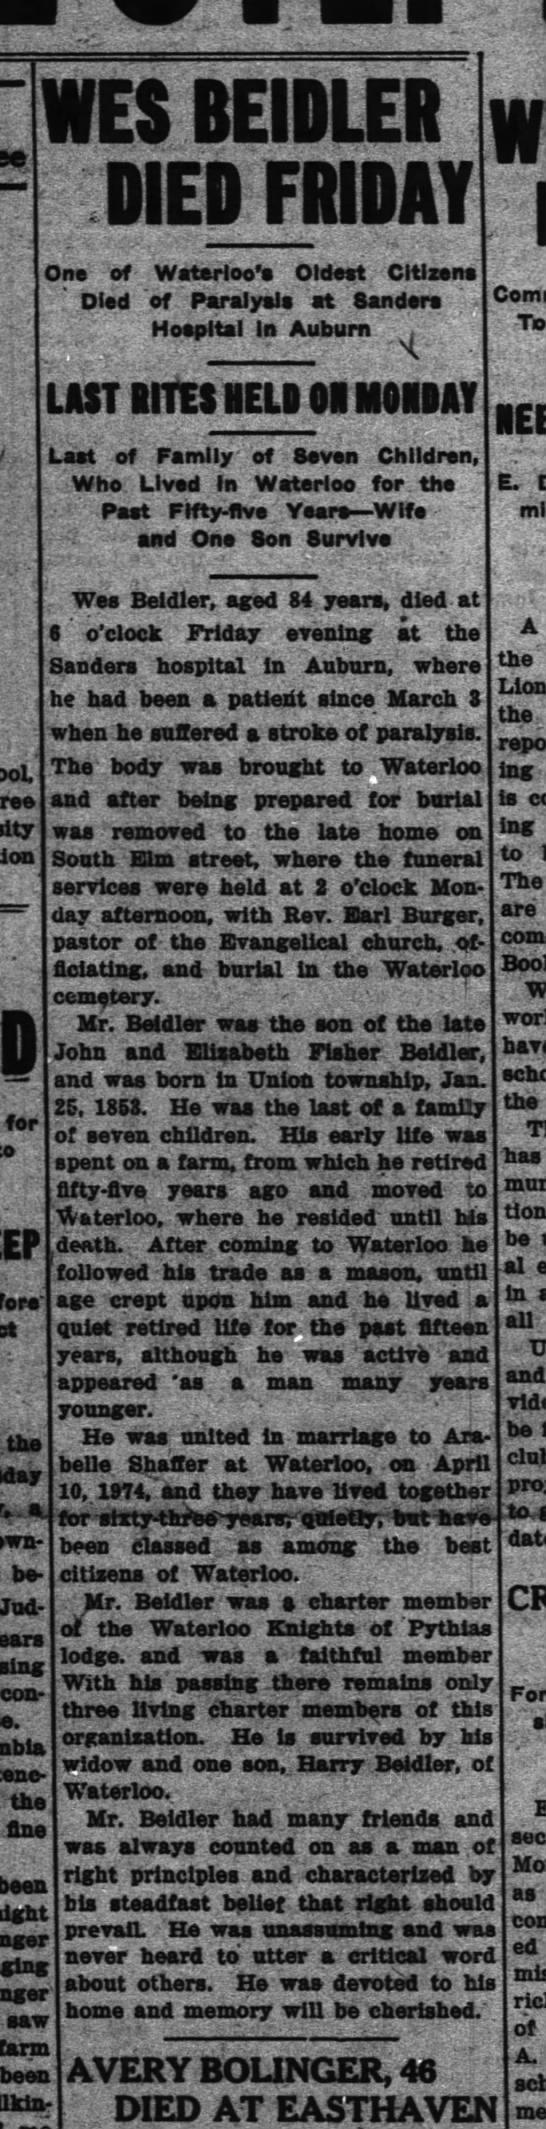 BEIDLER, Hiram Wesley - obit. - 3 I Du8 dehcied .c-D mm One of Died Waterloo's...